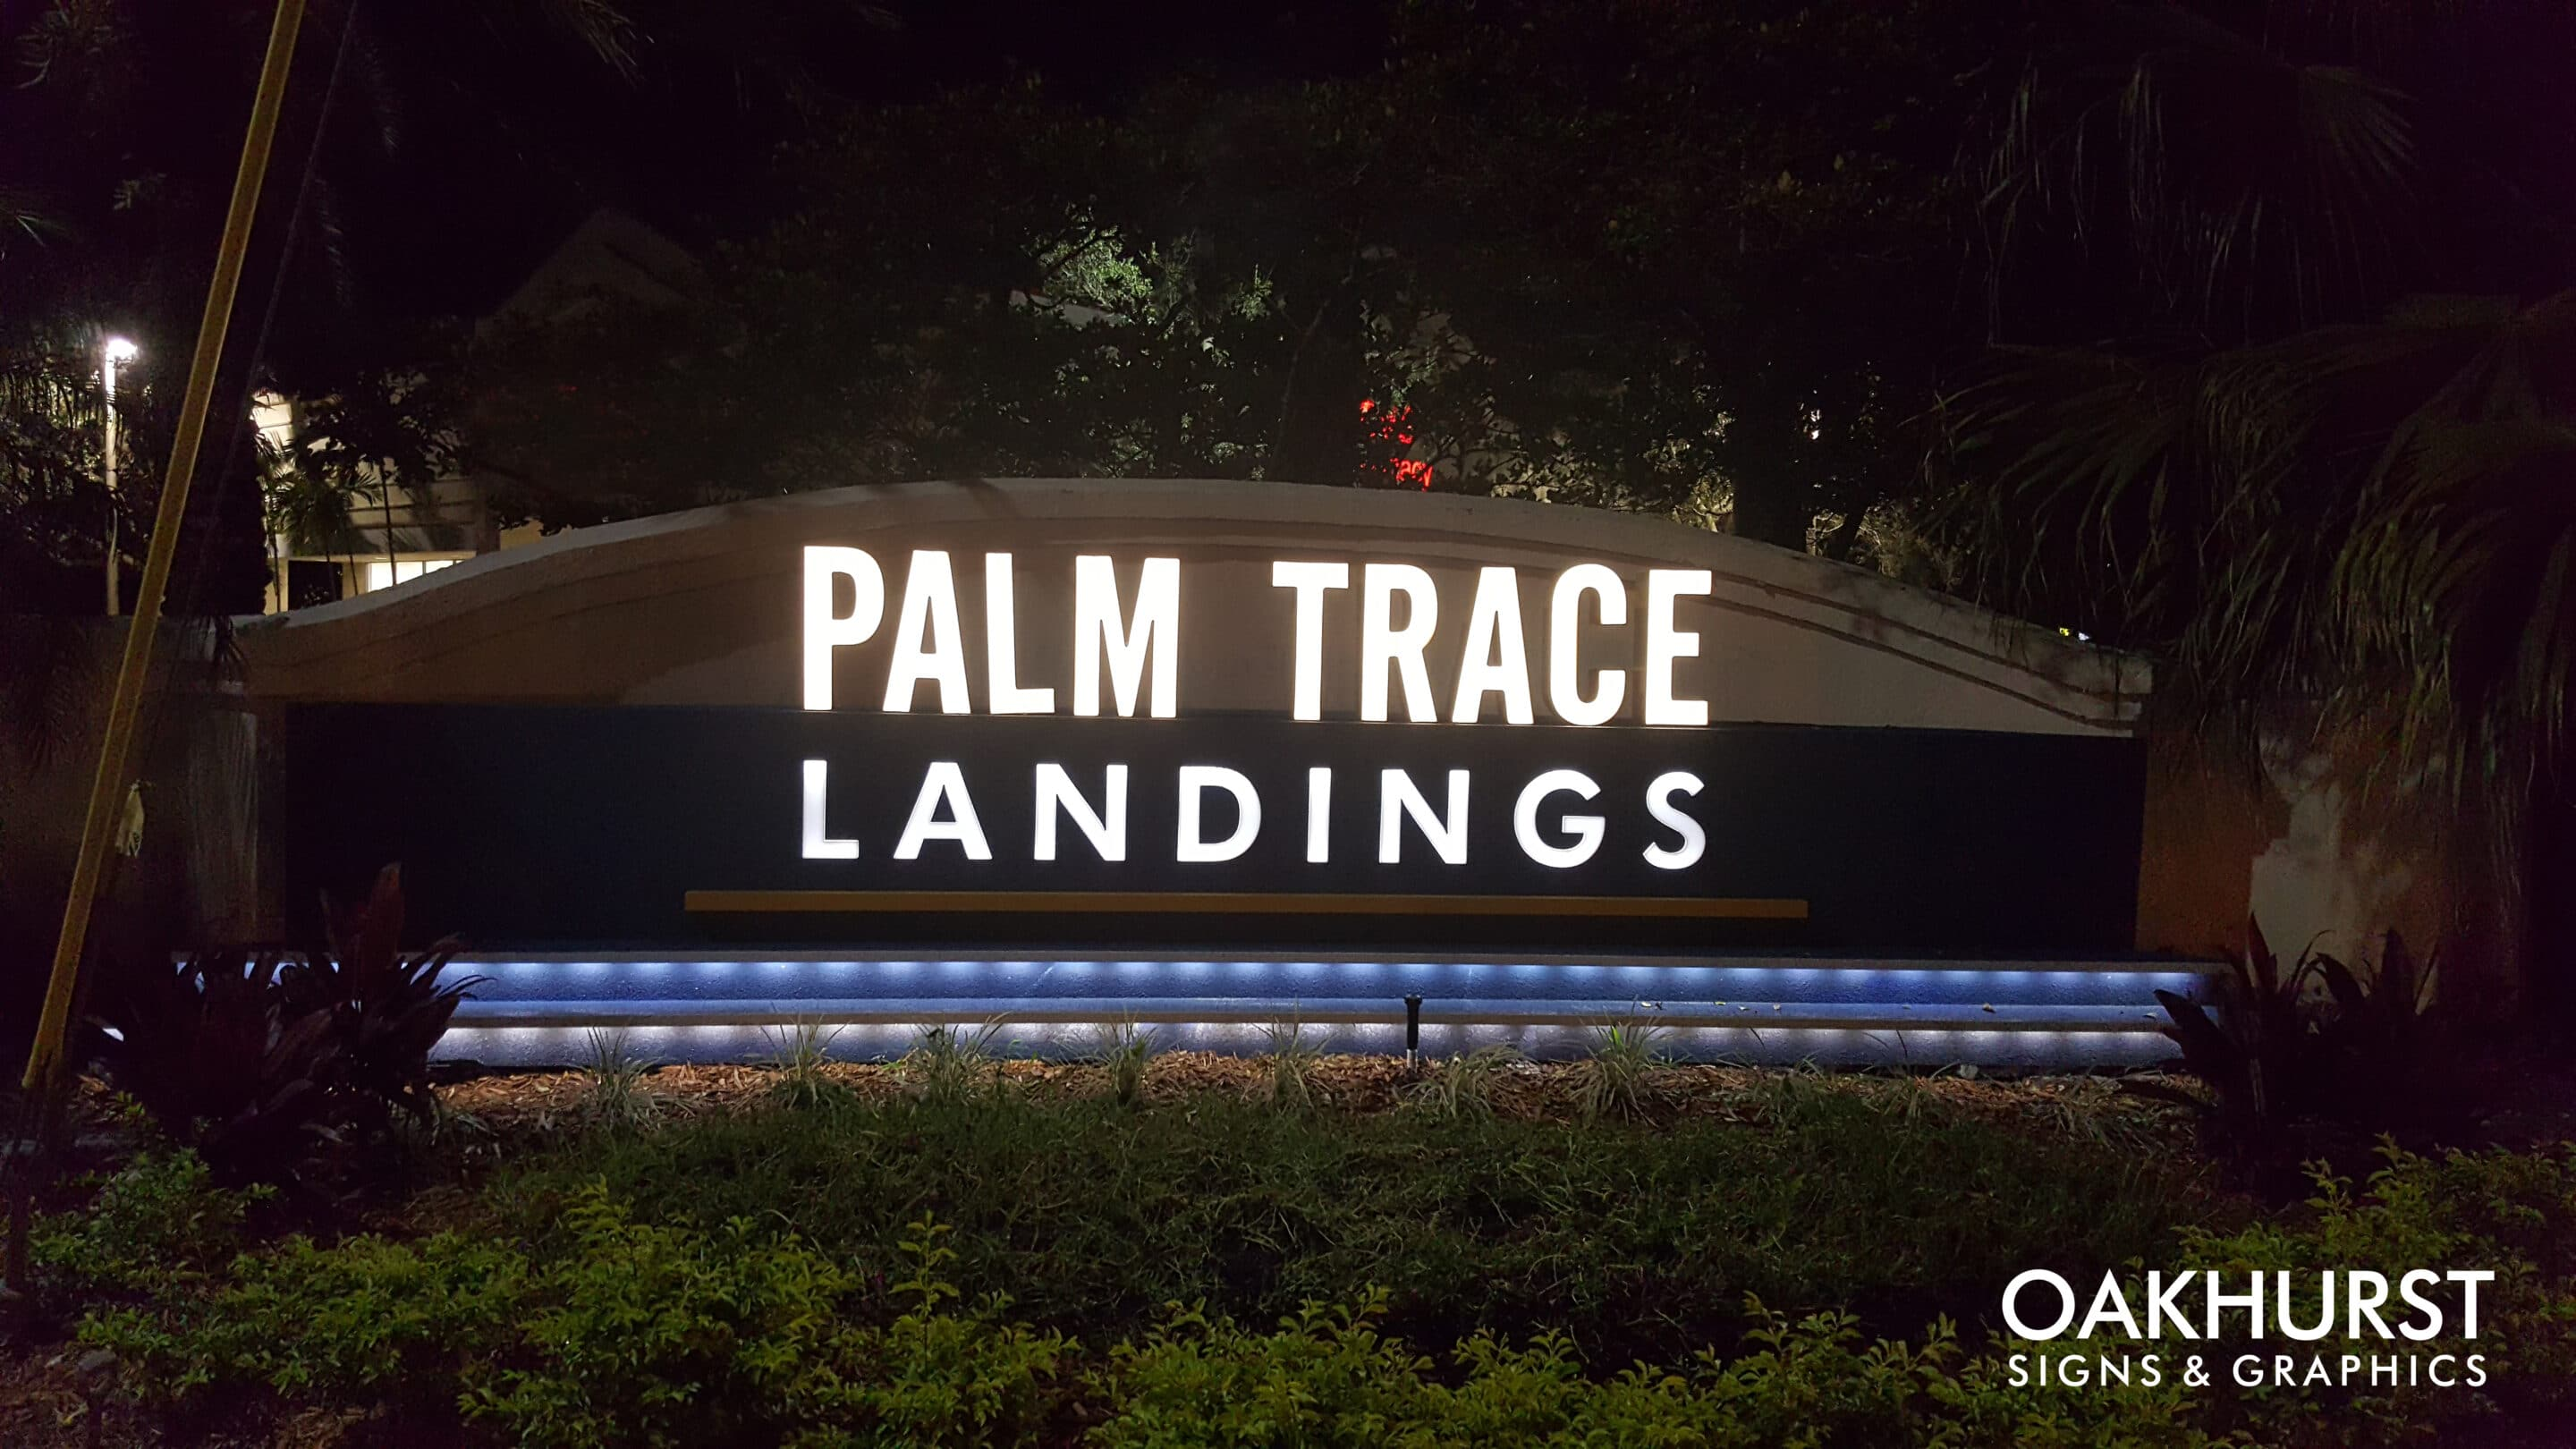 Palm Trace Landings Channel letters illuminated at night